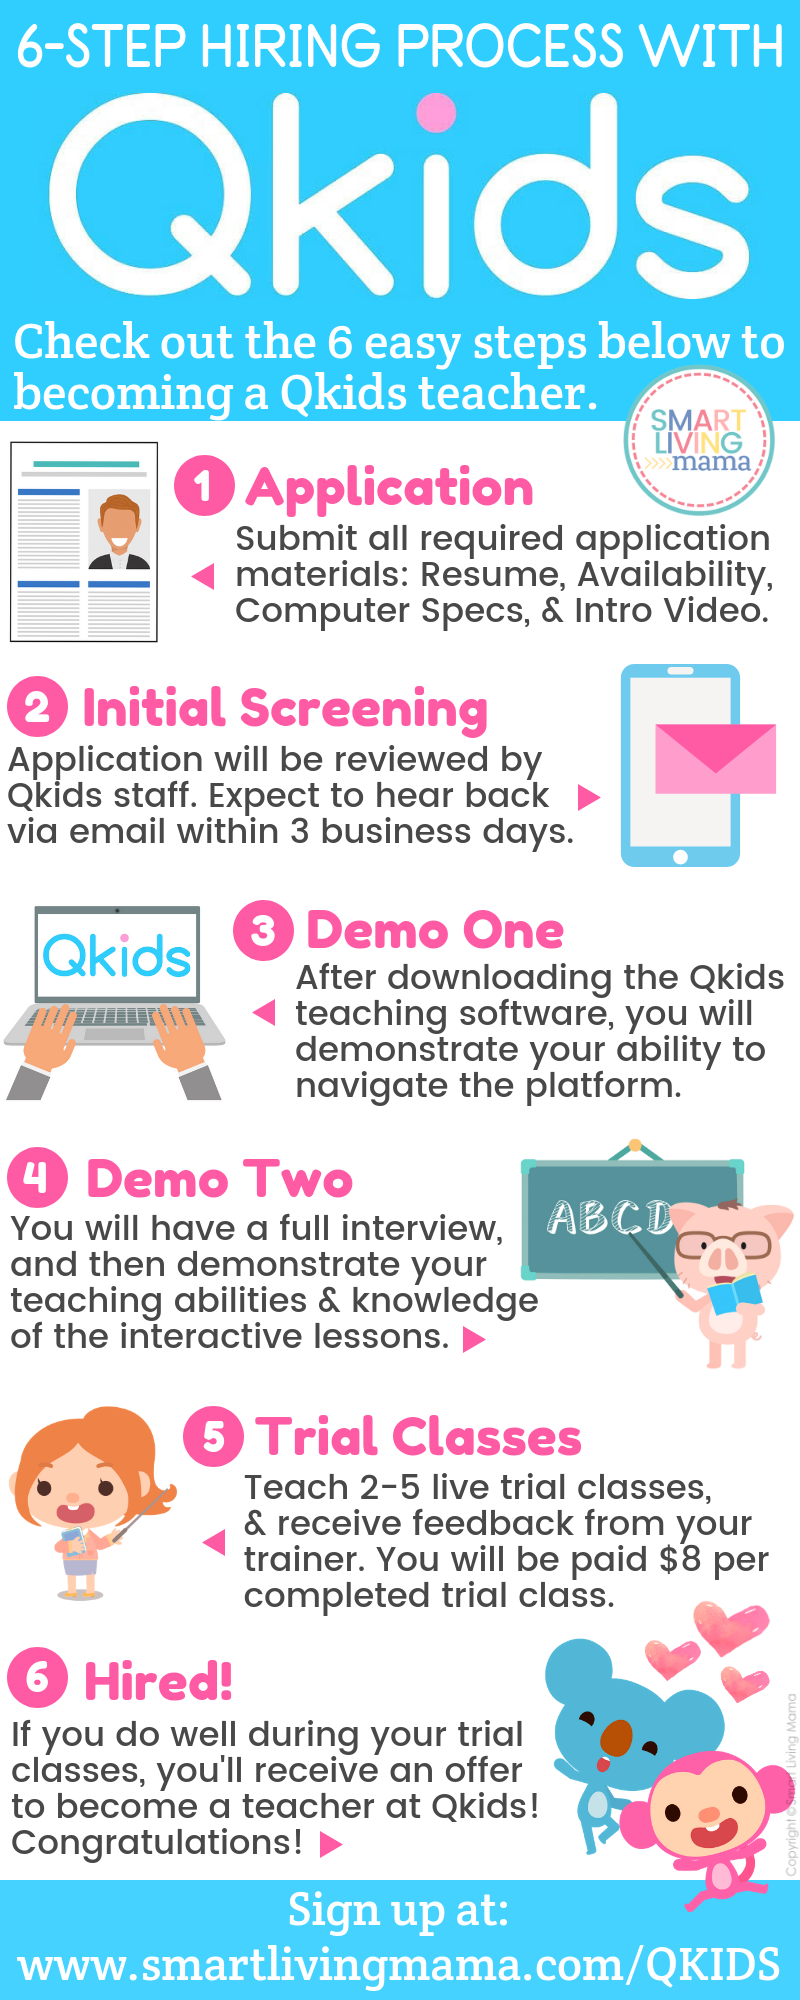 Smart_Living_Mama_Qkids_Hiring_Process_Infographic_Blog_Post_Image